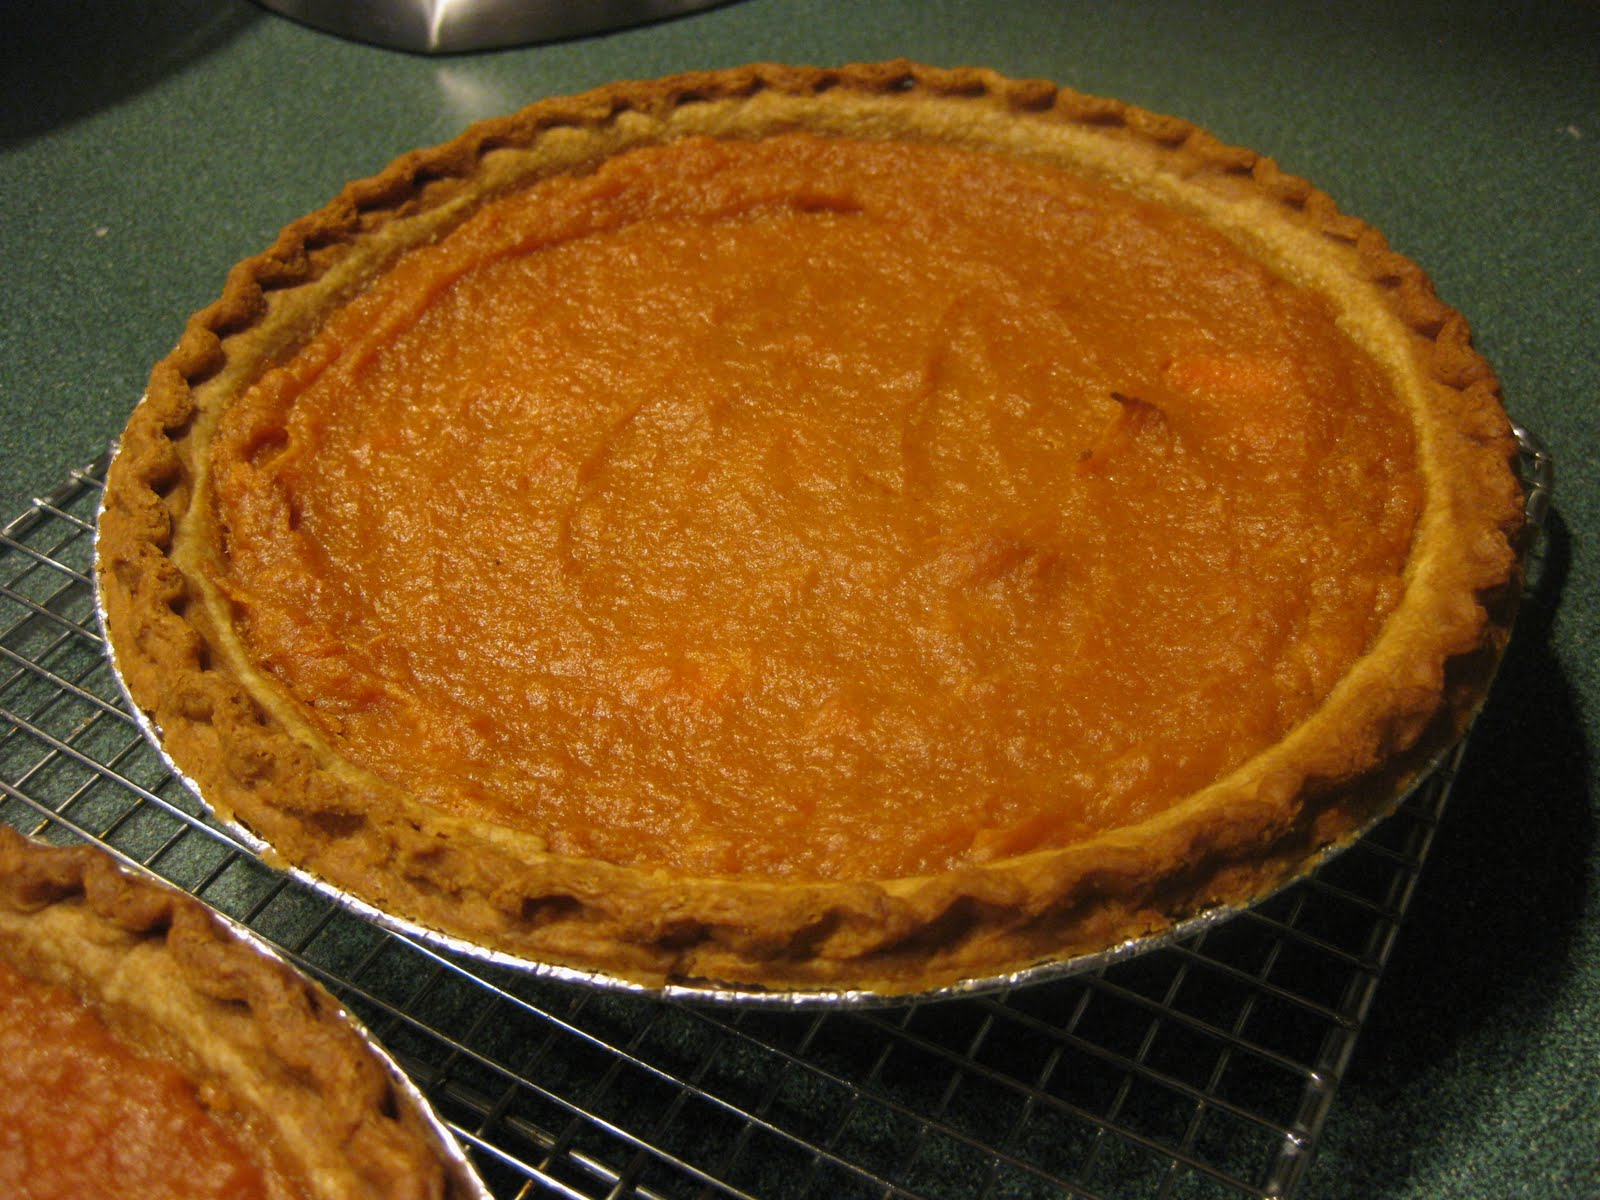 My Life On A Plate: Sweet Potato Pie